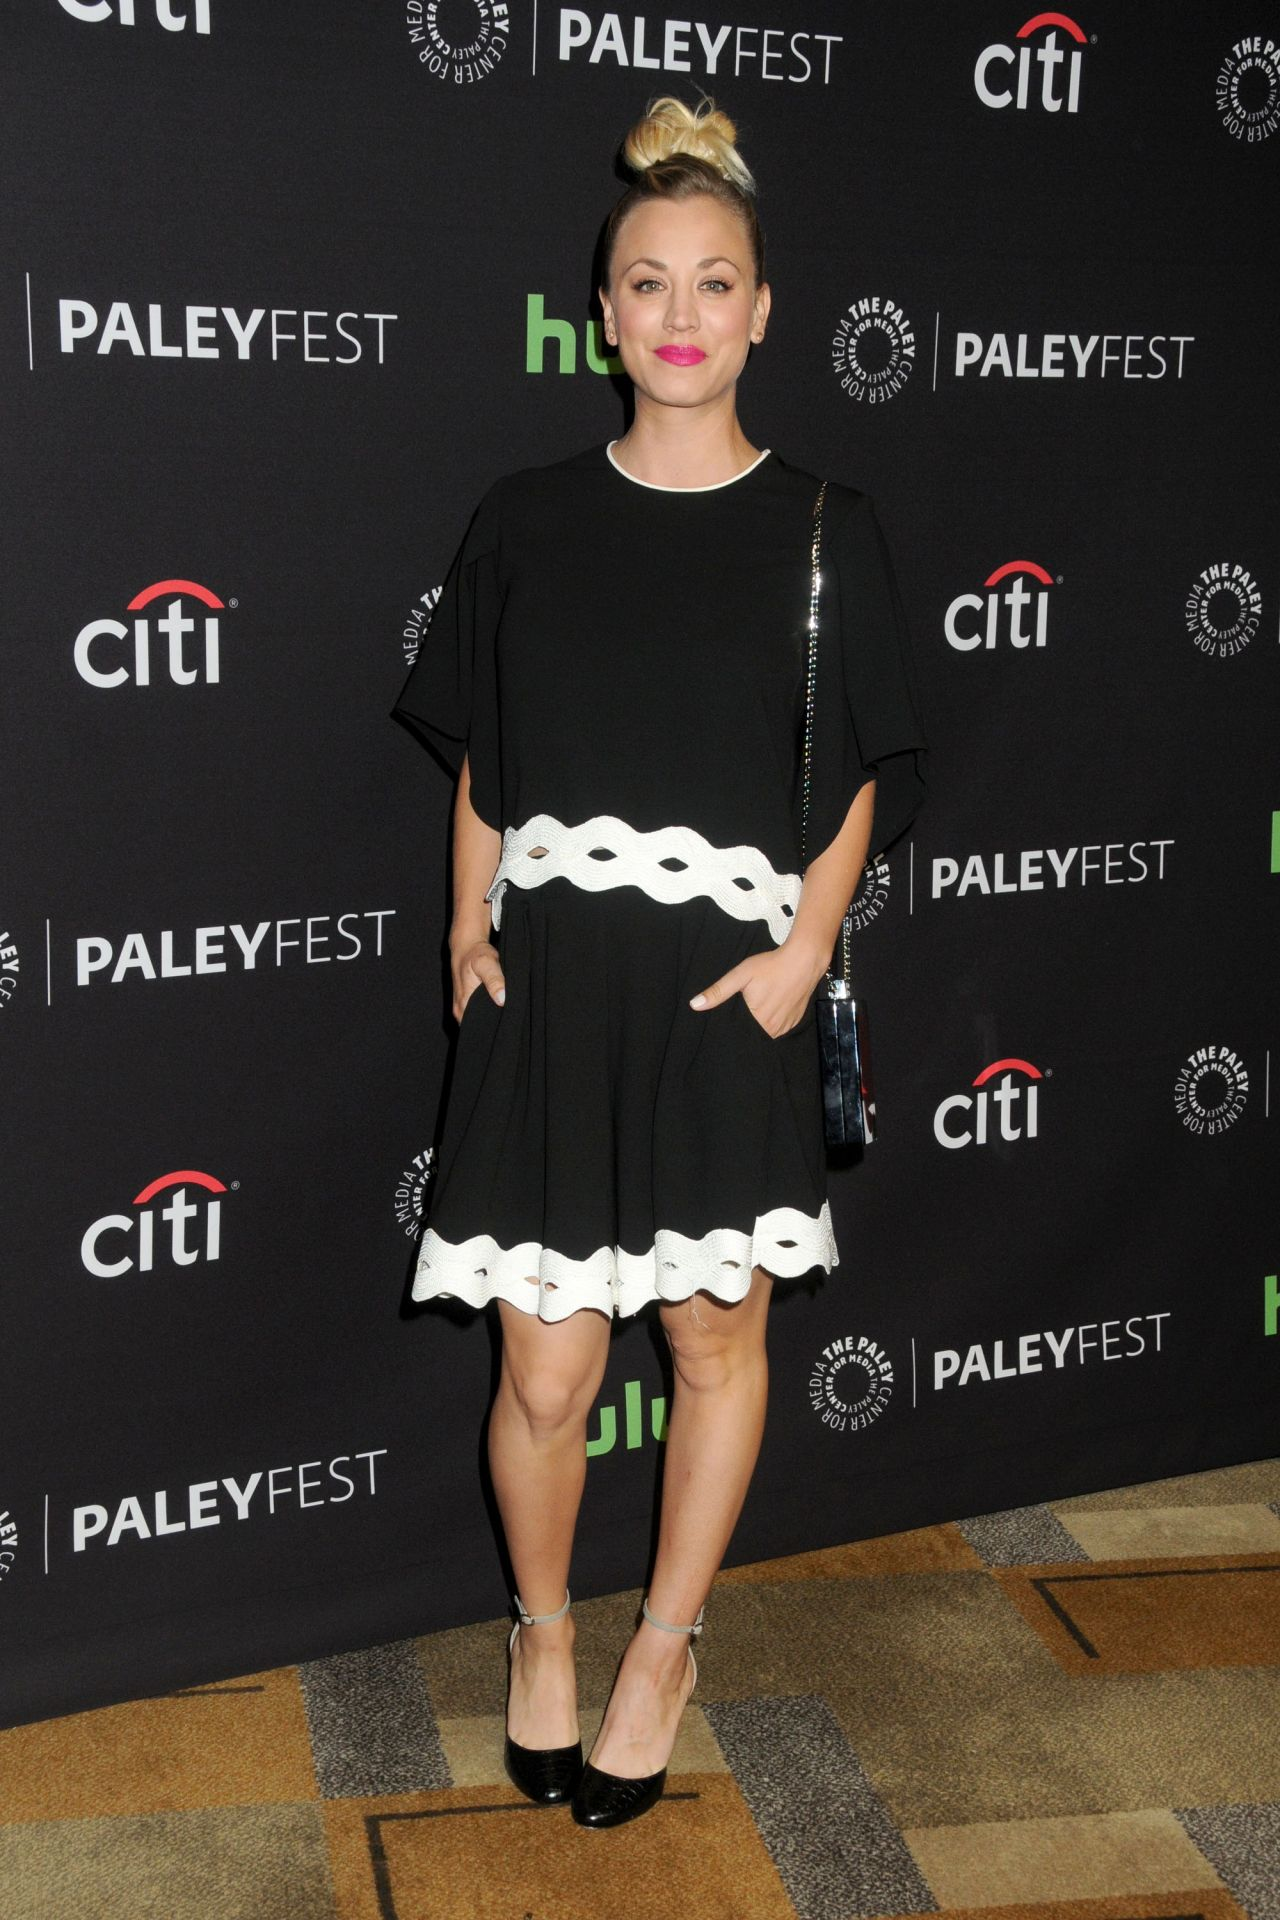 kaley-cuoco-33rd-annual-paleyfest-the-big-bang-theory-hollywood-3-16-2016-2